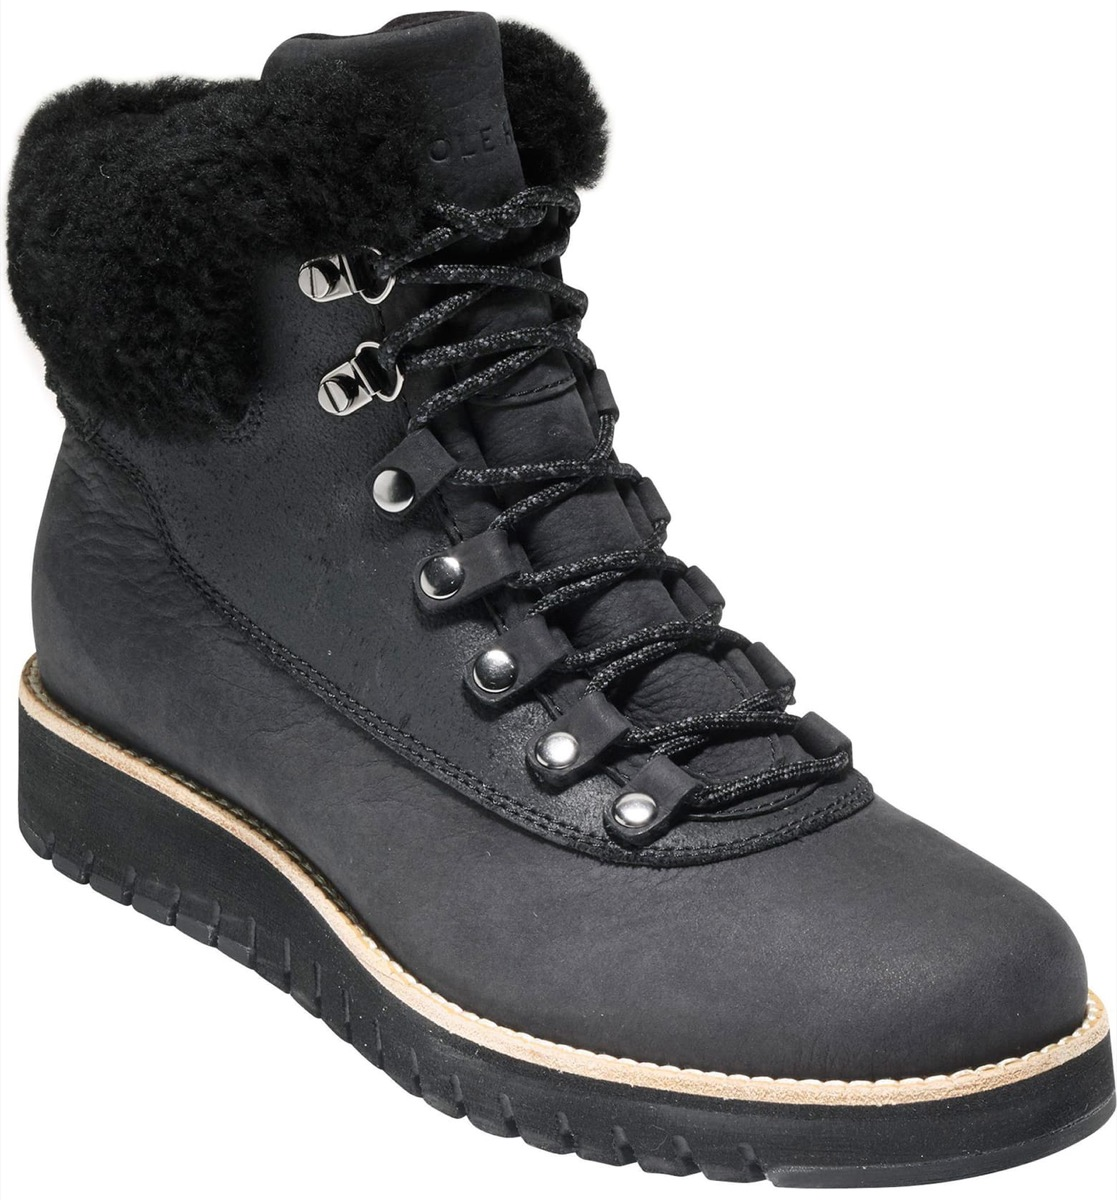 black hiking boots with shearling lining